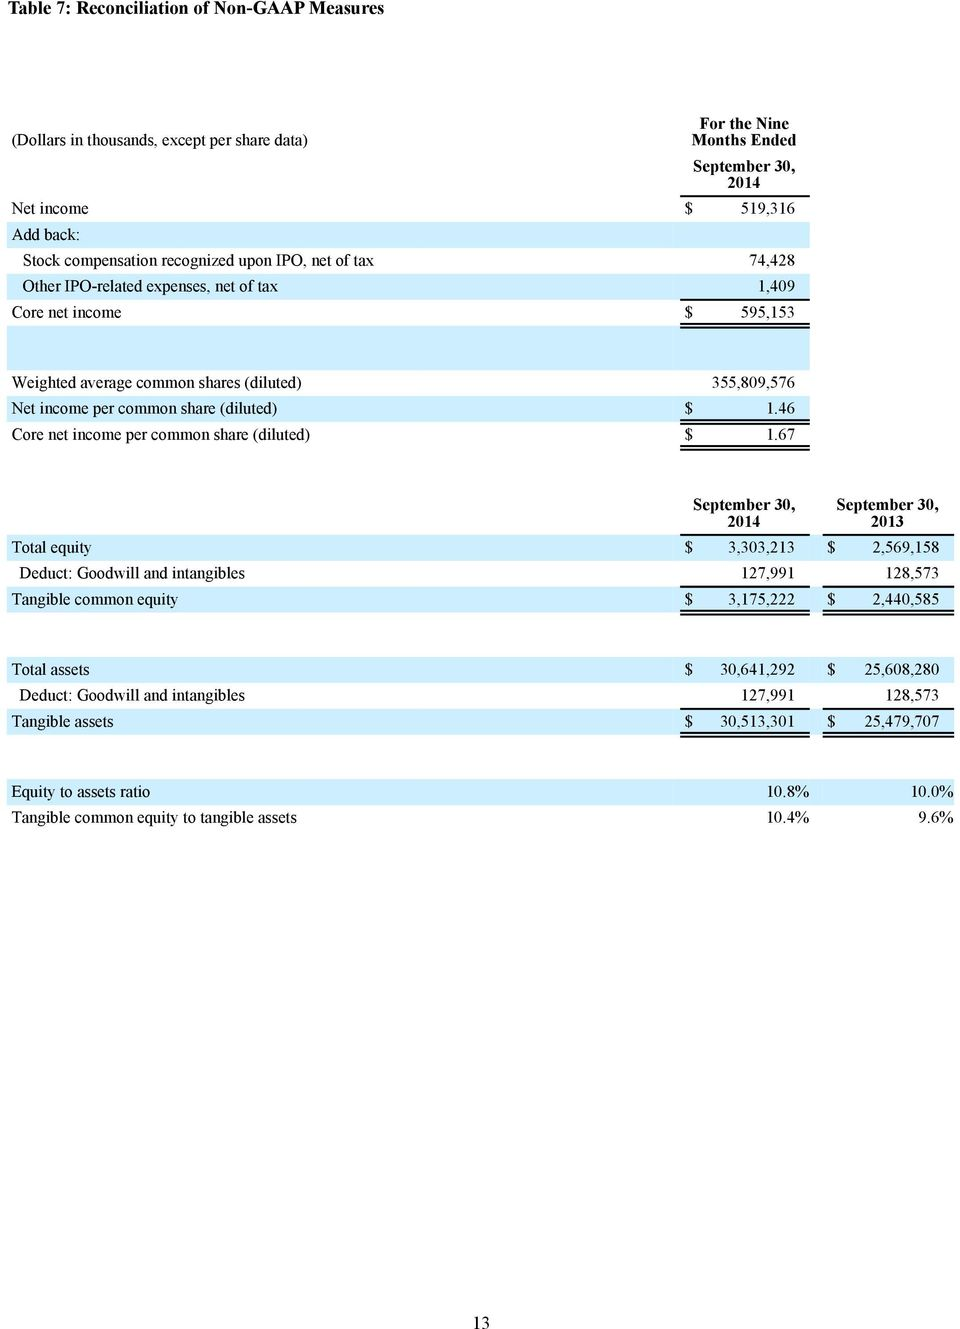 46 Core net income per common share (diluted) $ 1.